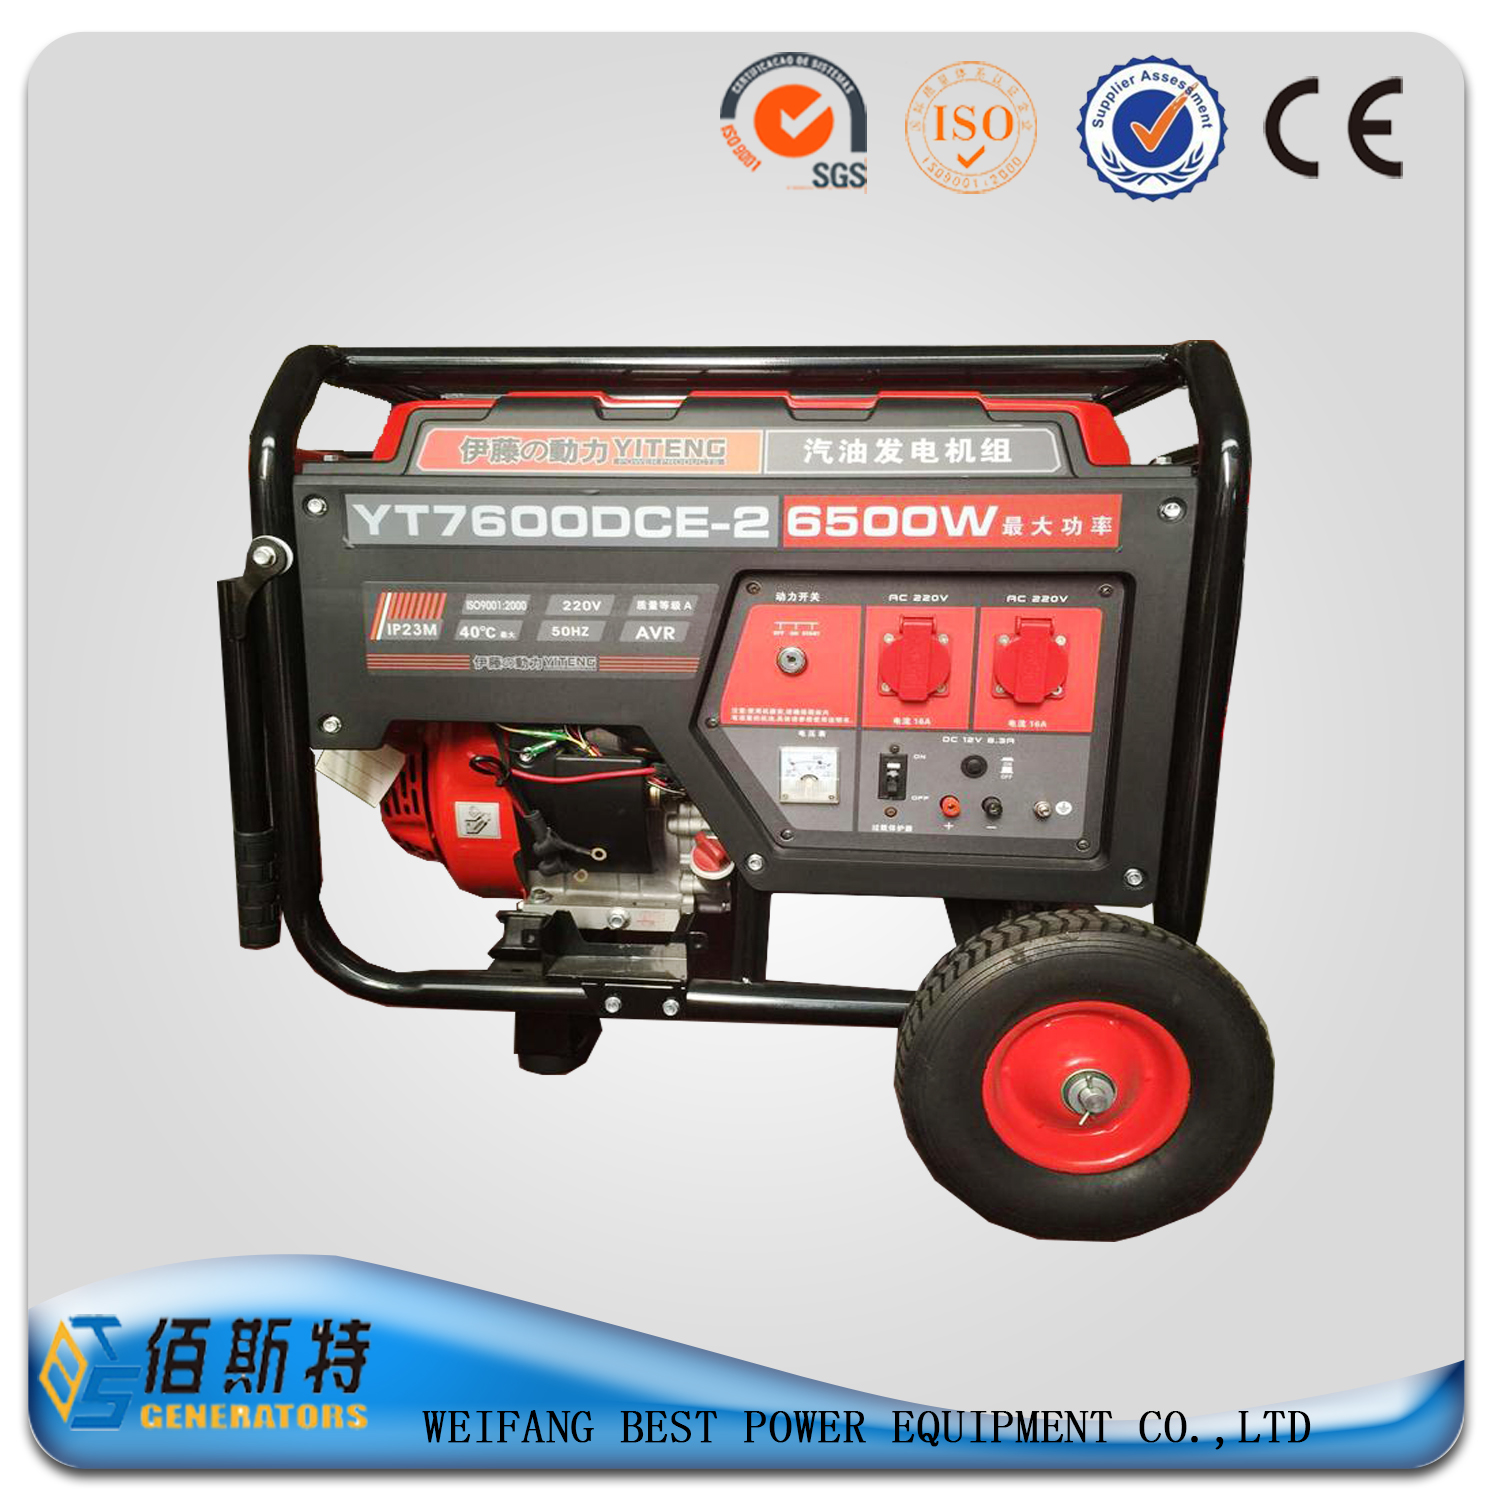 Portable gasoline generator set for home use